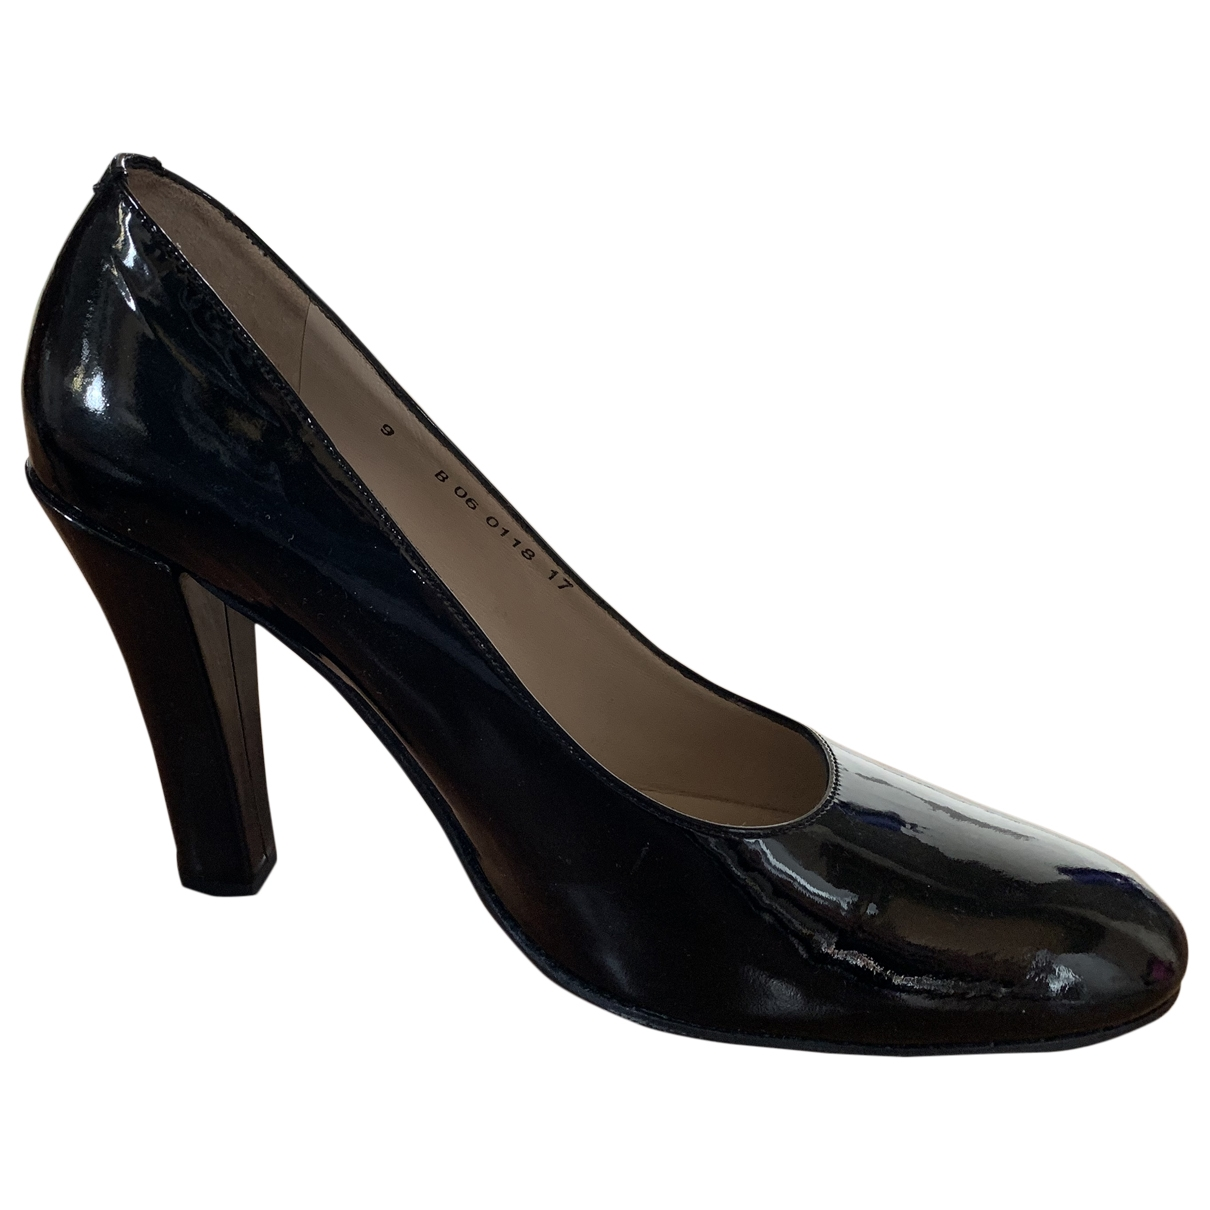 Robert Clergerie \N Pumps in  Schwarz Lackleder